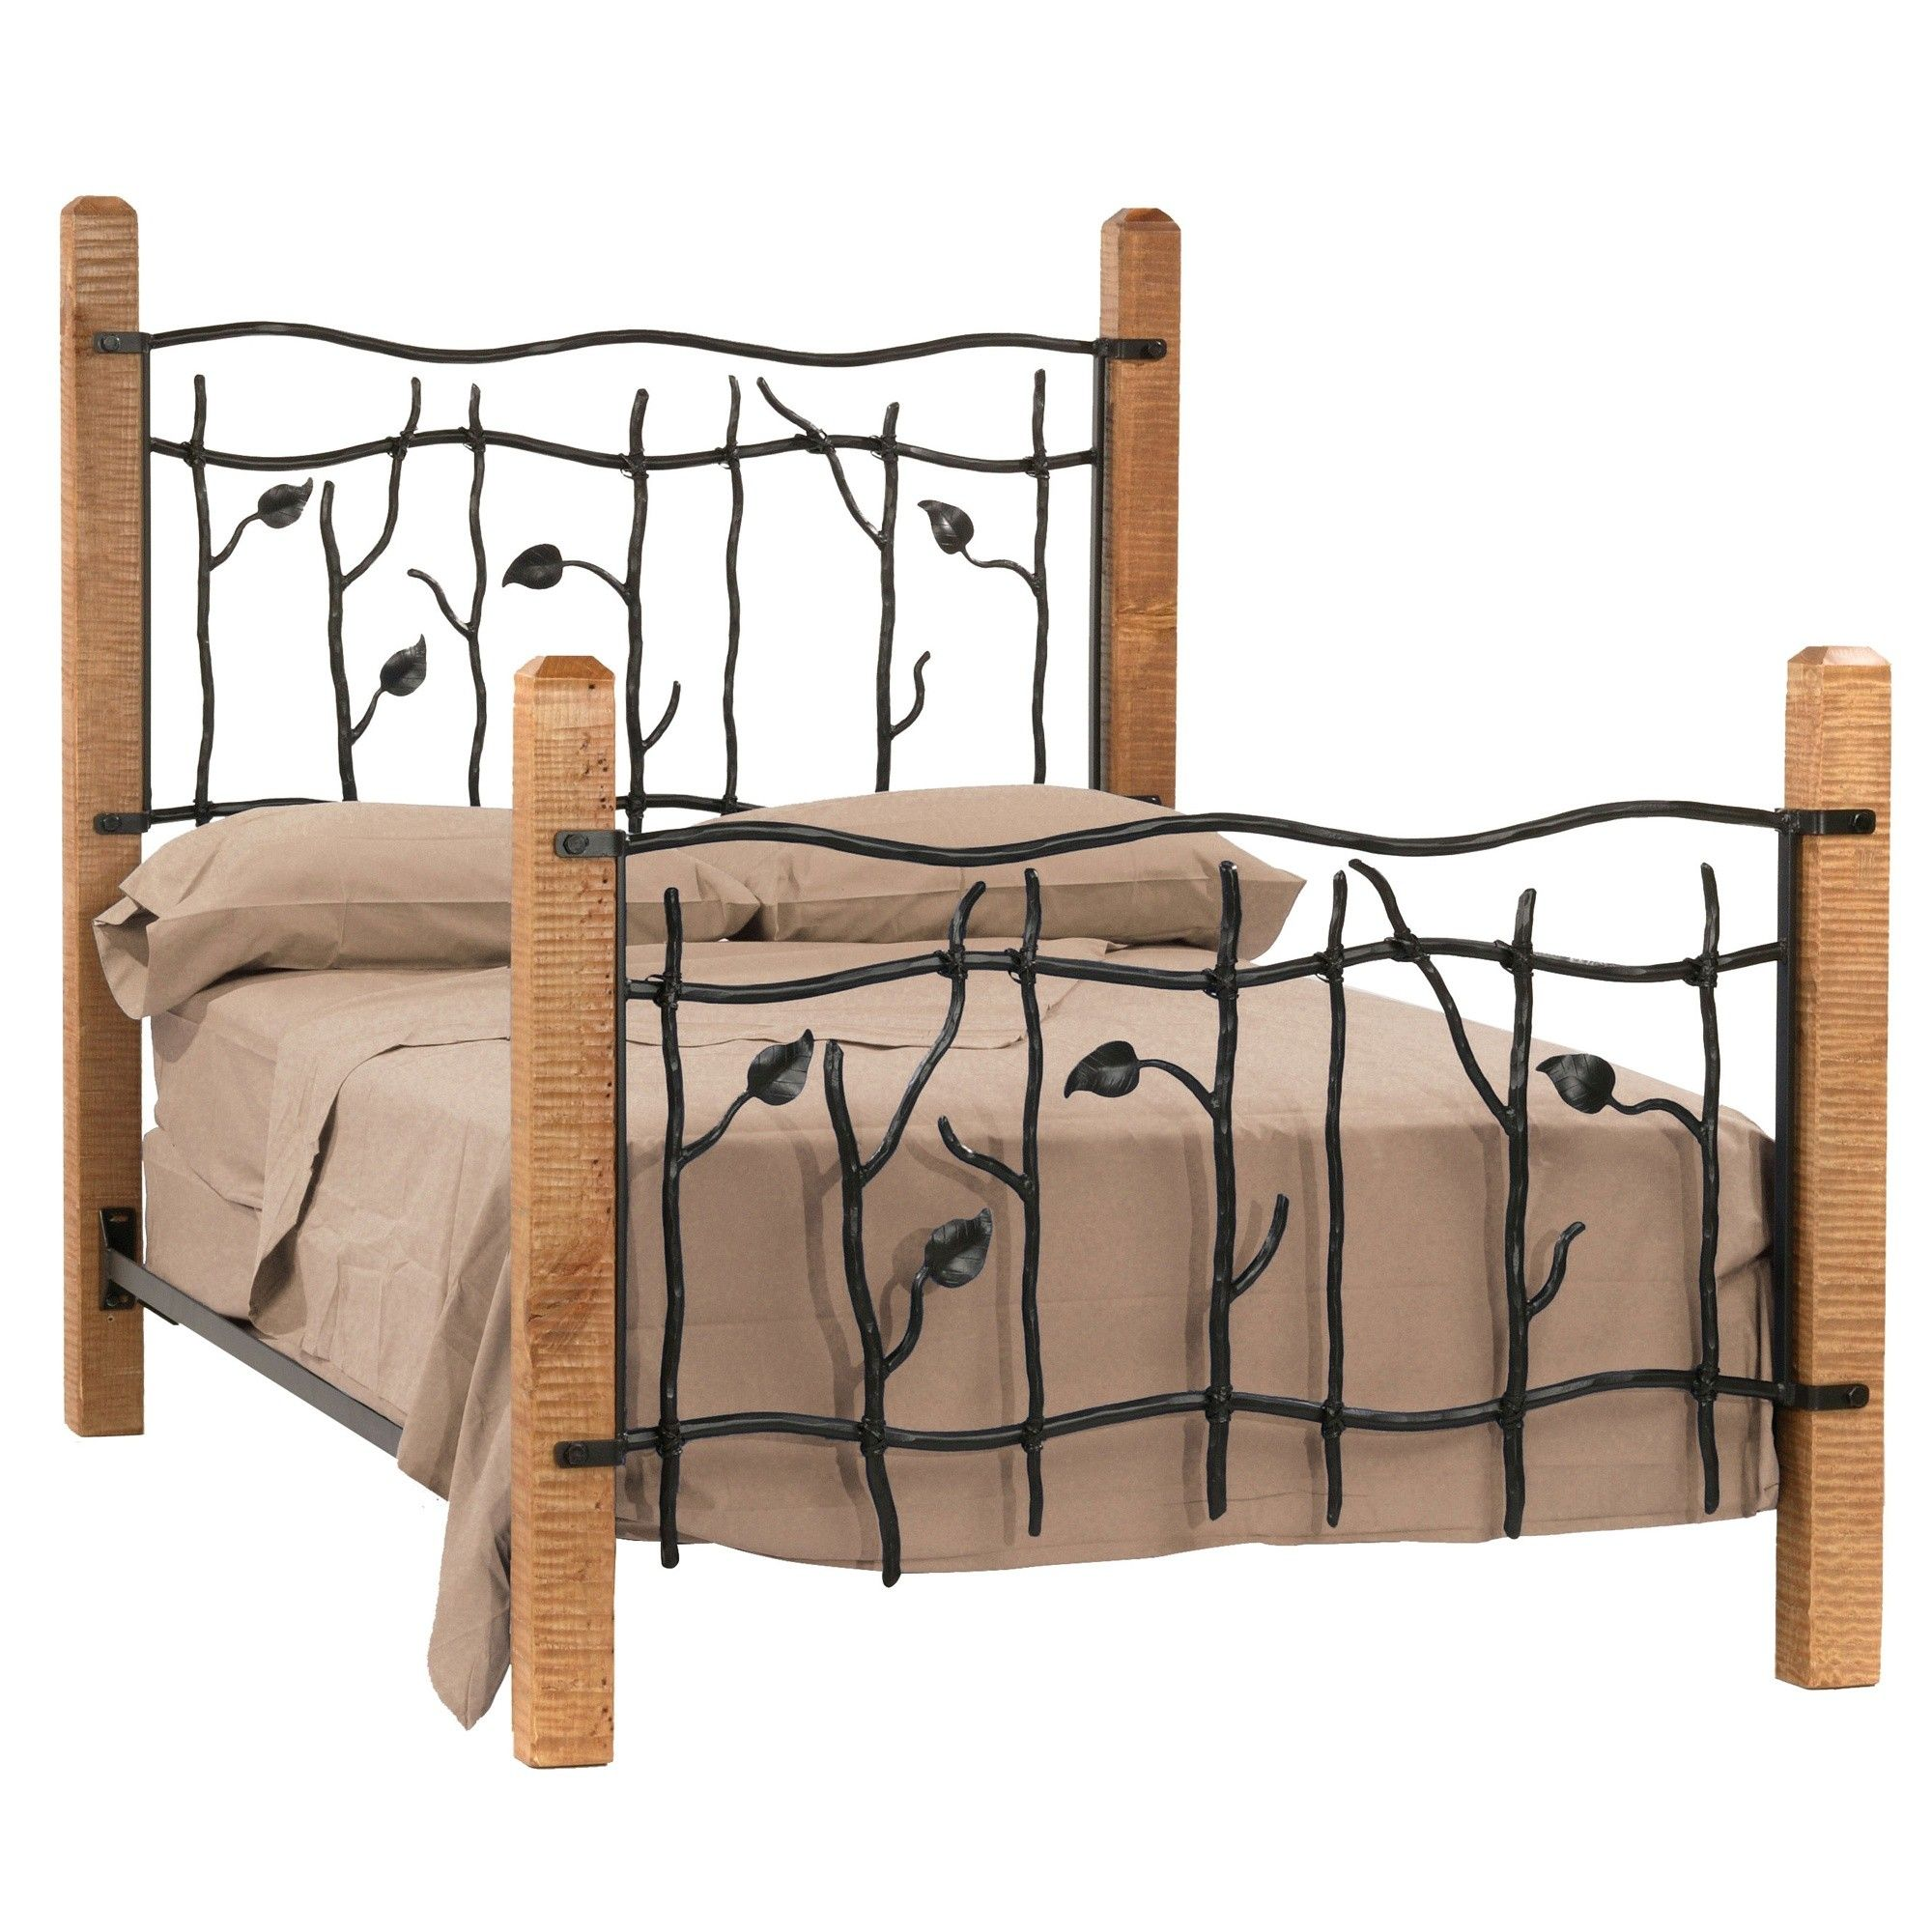 Brown Wooden Based Bed Frame With Leaves Twig Wrought Iron